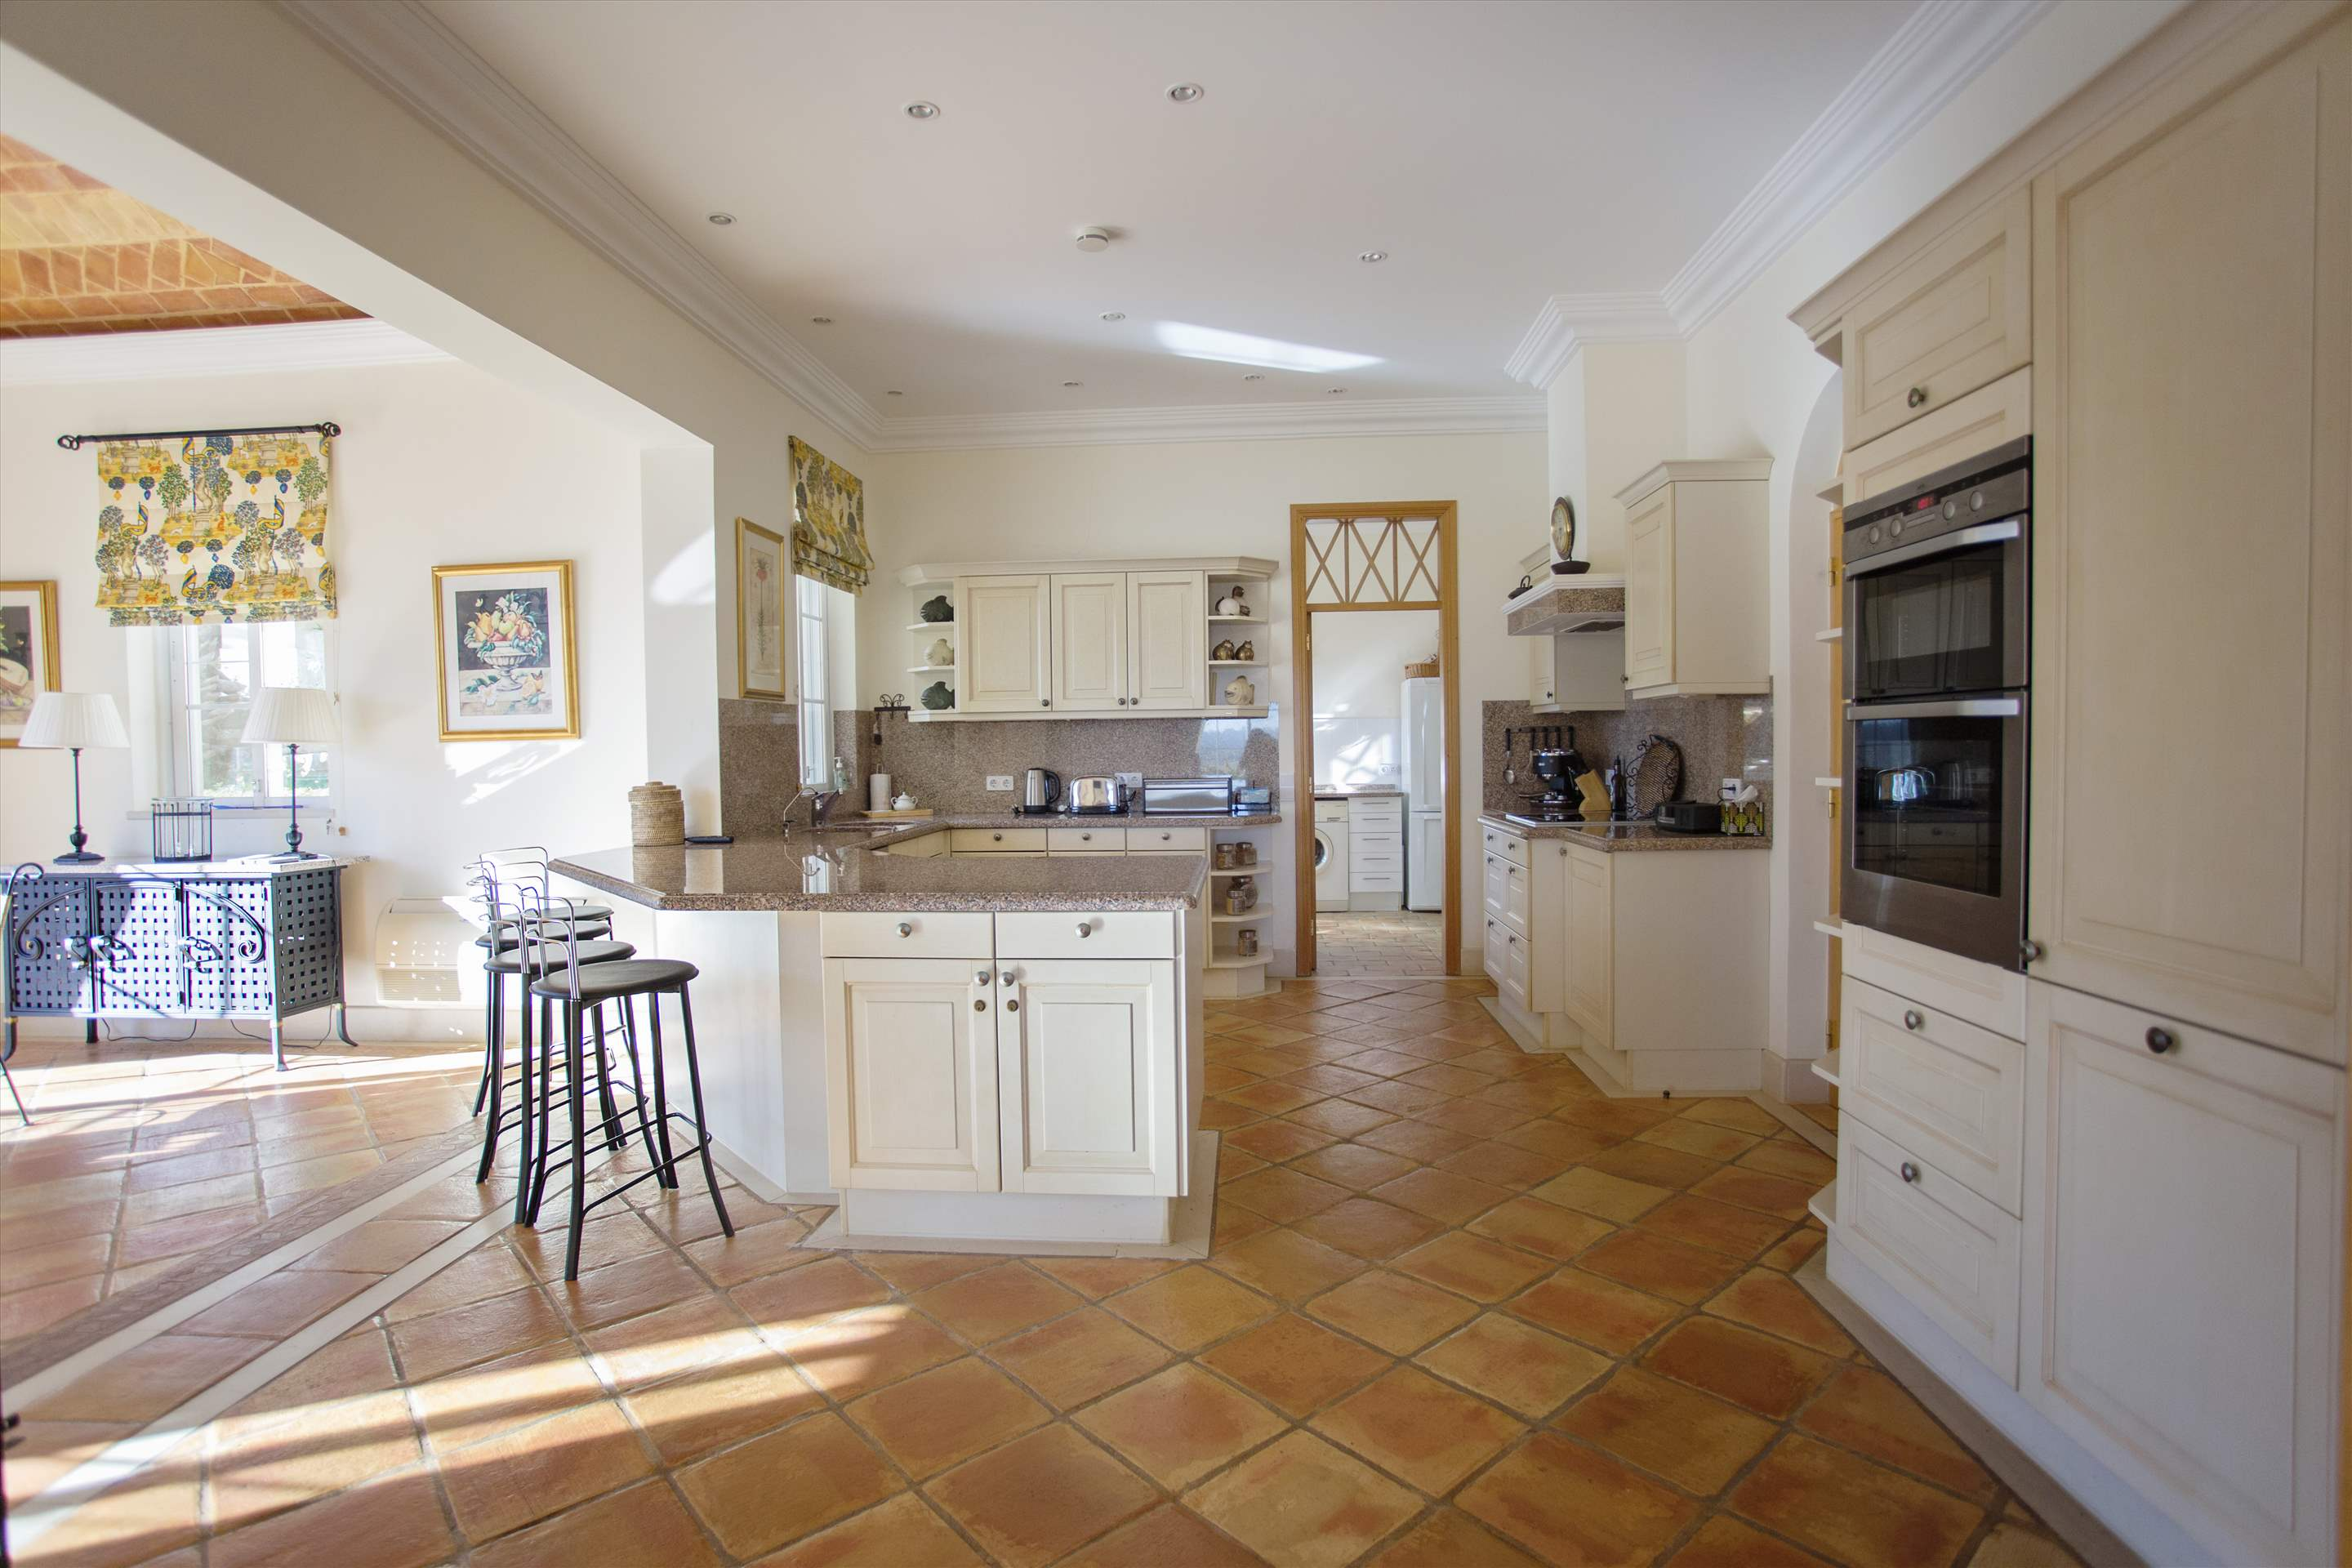 Villa Palmeiras Altas, 5 bedroom villa in Quinta do Lago, Algarve Photo #15